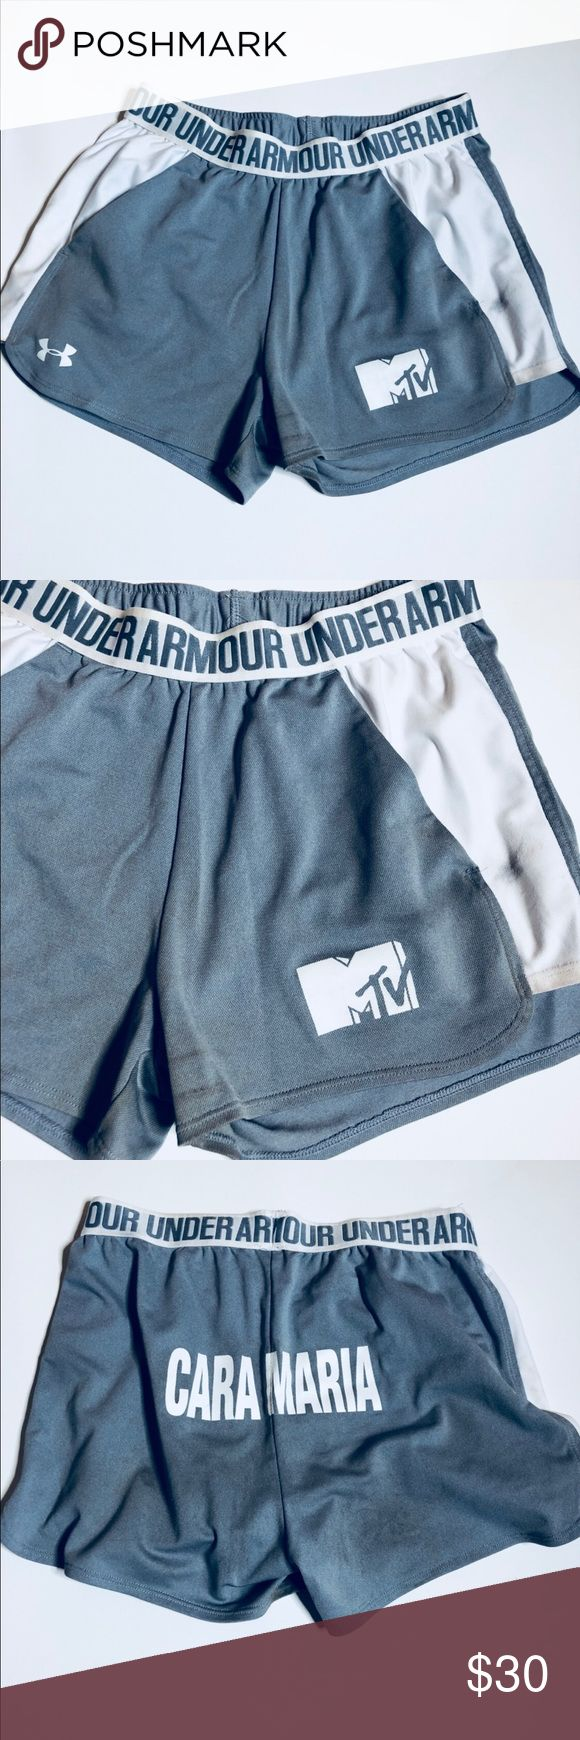 under armour Challenge gray athletic shorts. MTV These have been through some stuff. Serious work has been done while rockin these. They have battle scars to prove it. They are def well worn. Challenge mud doesnt come out. But they are comfy. They have pockets. They are awesome.   Comes with autographed thank you photo :) Under Armour Shorts